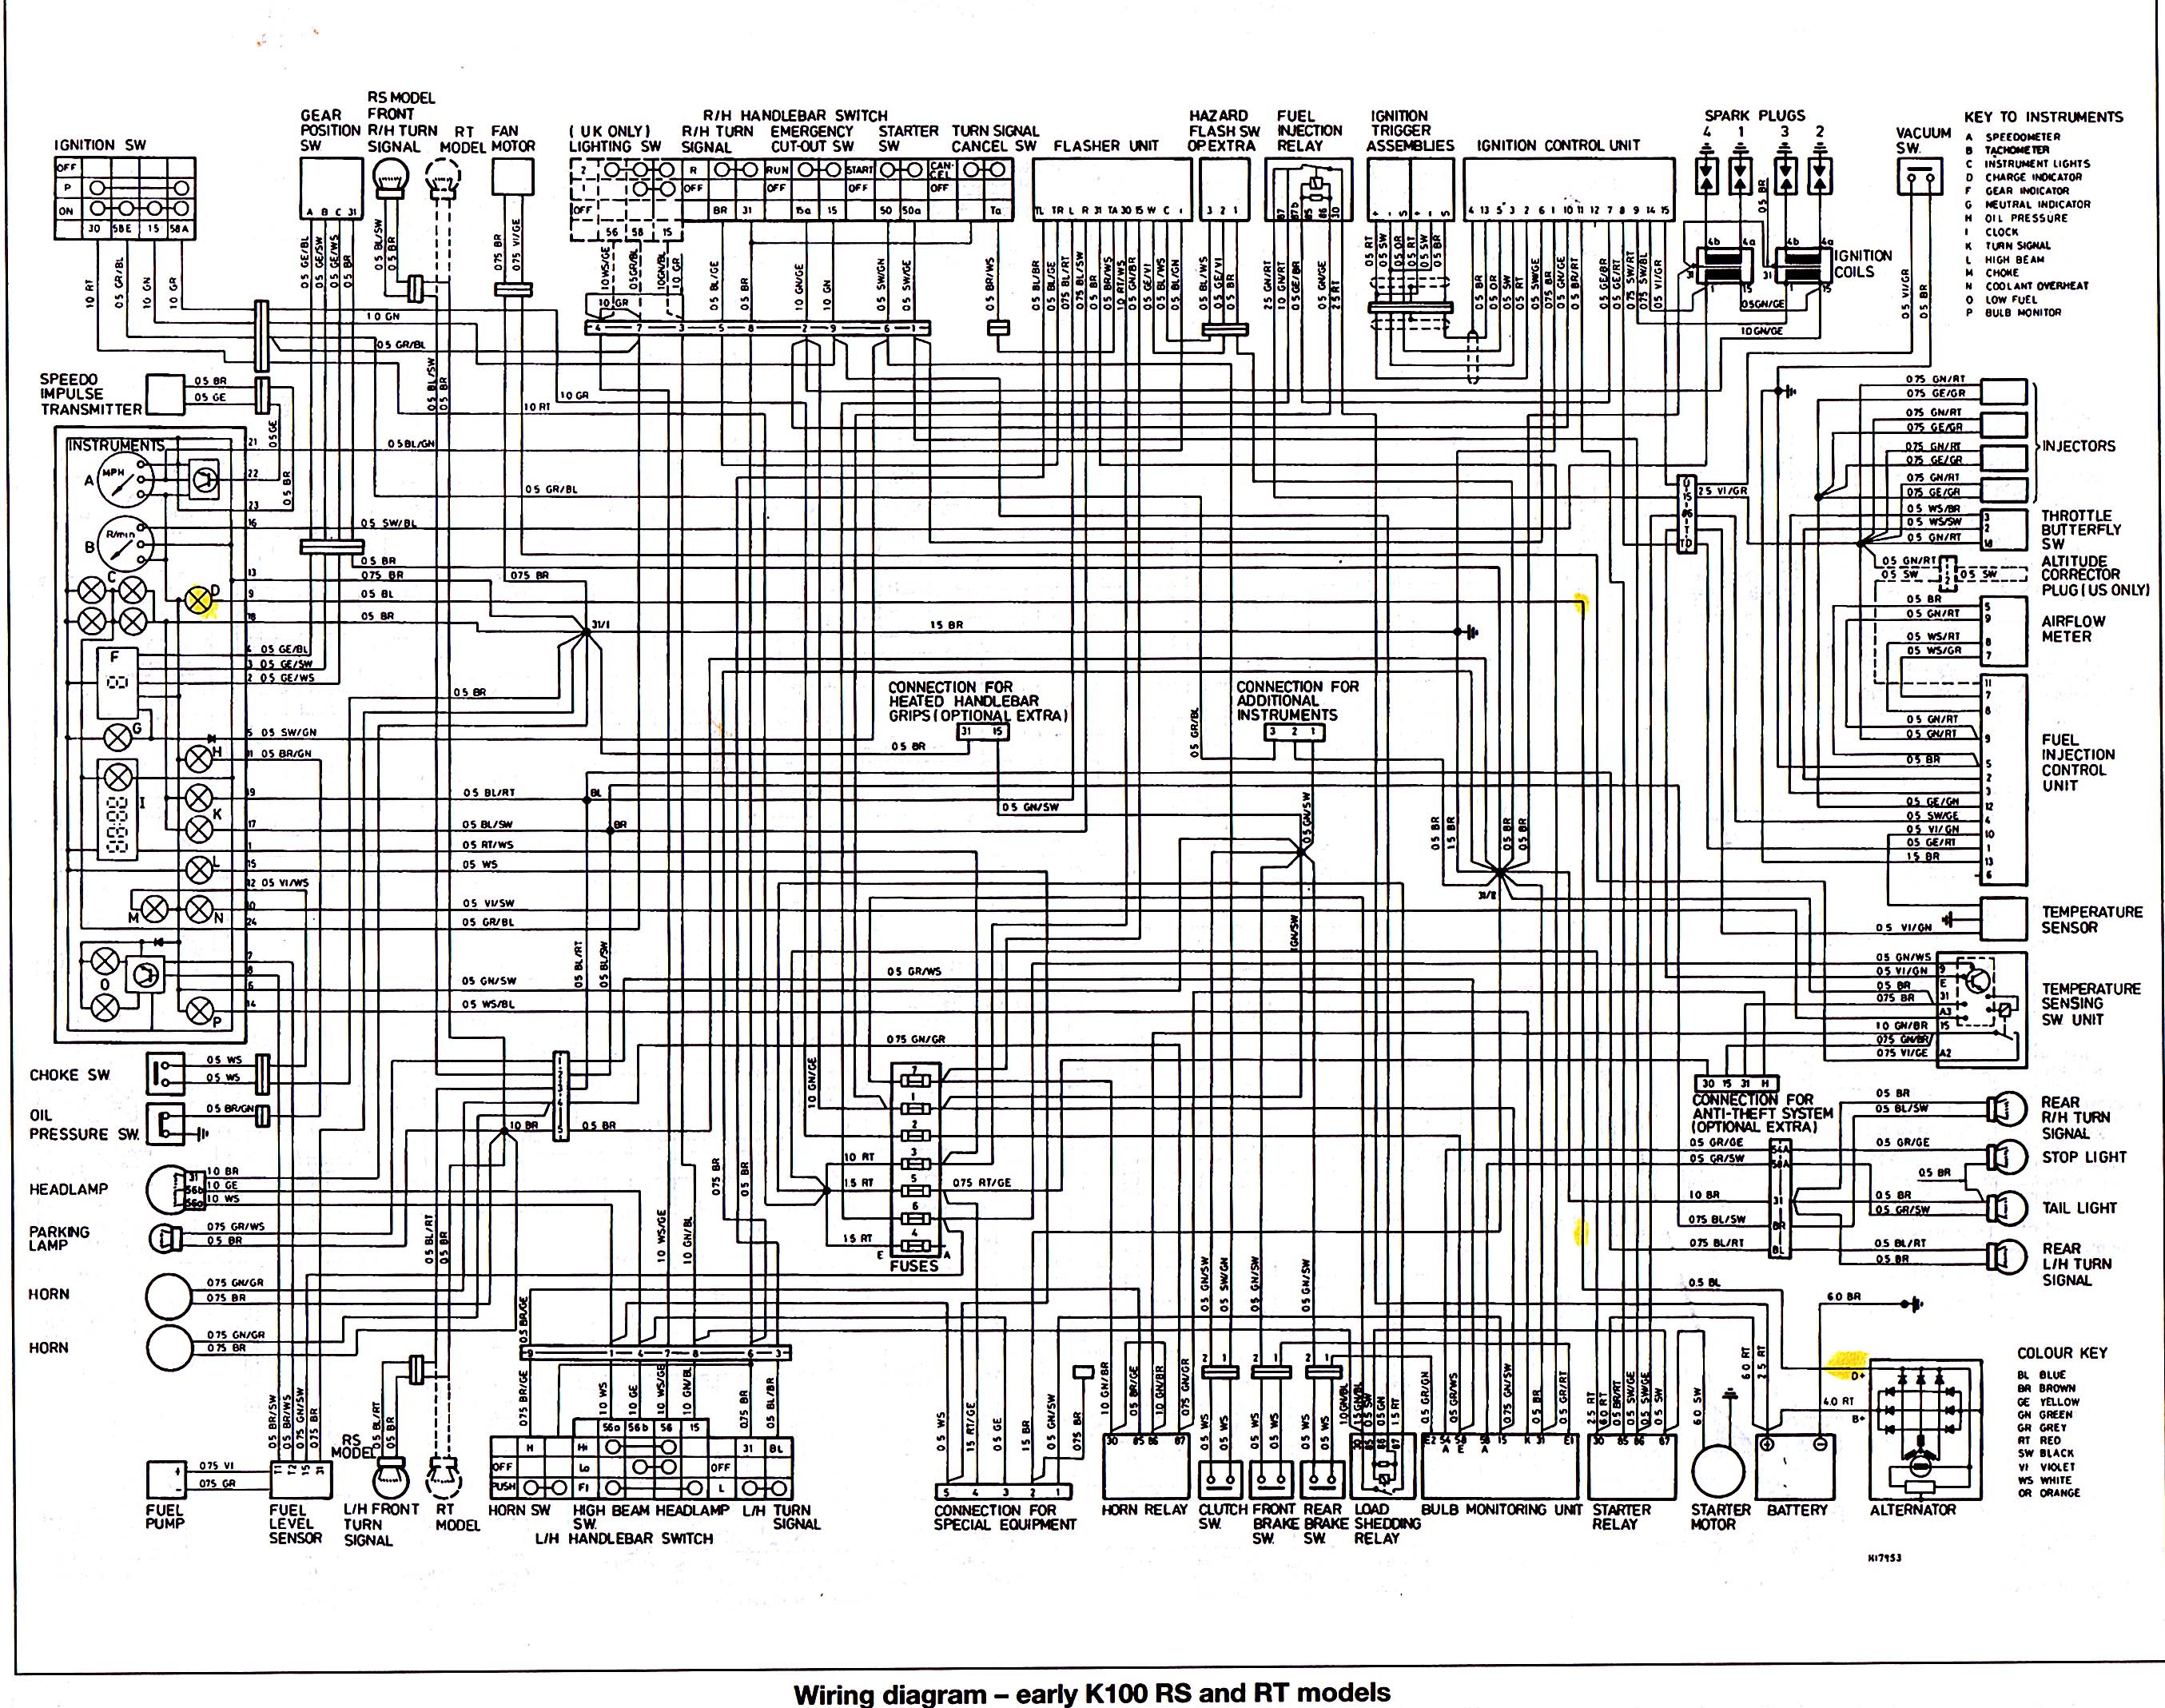 Awesome Bmw Battery Wiring Diagrams Pictures Inspiration